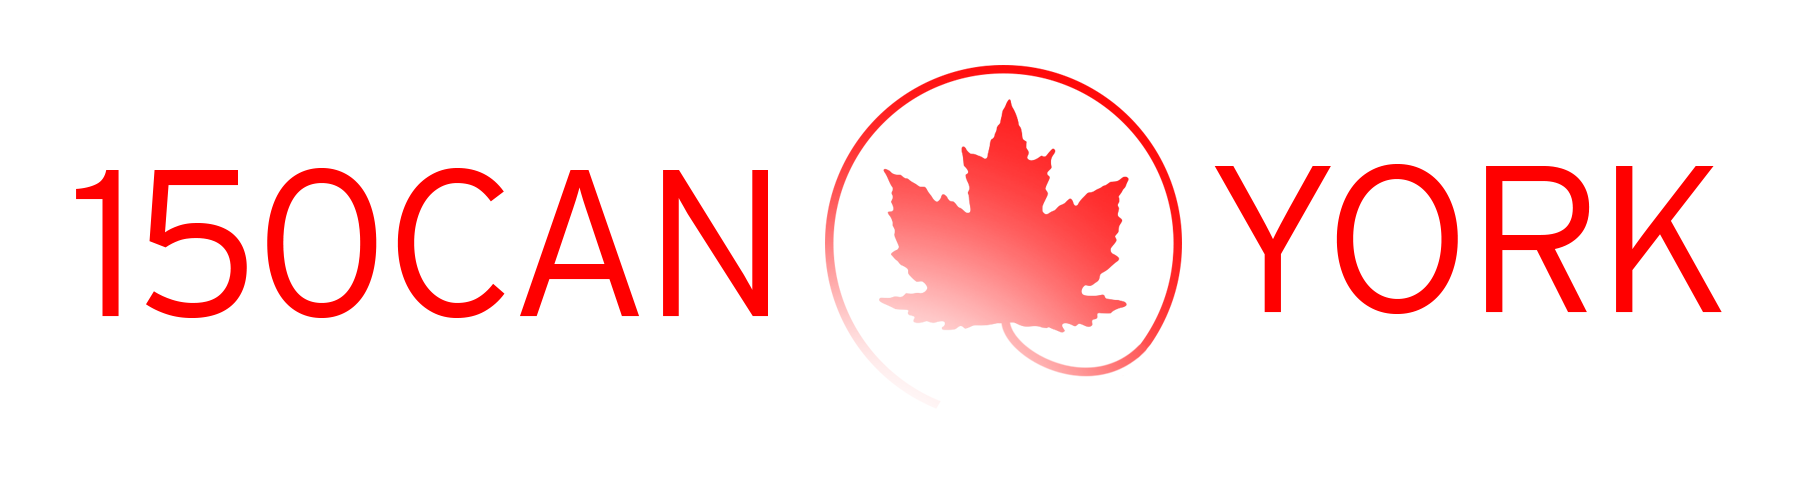 150 Canada at York Logo